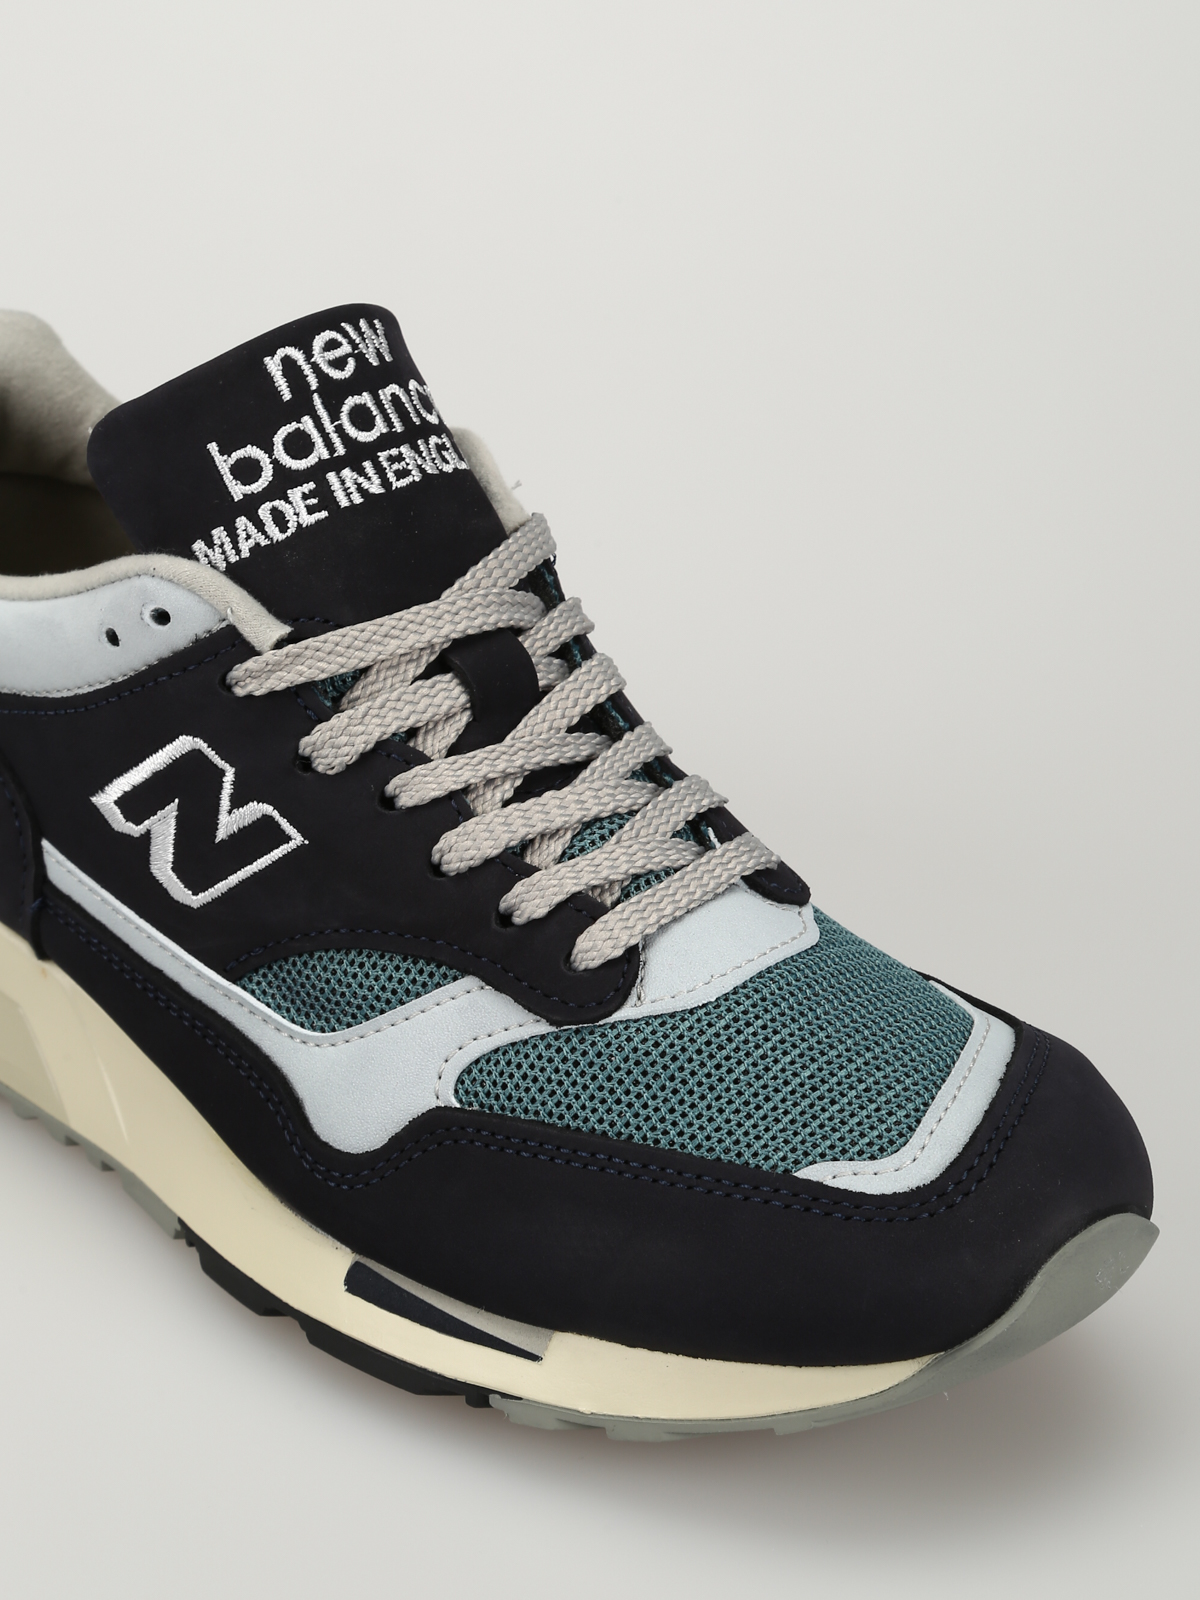 newest d229d 6d957 New Balance - Classic 1500 leather and mesh sneakers ...